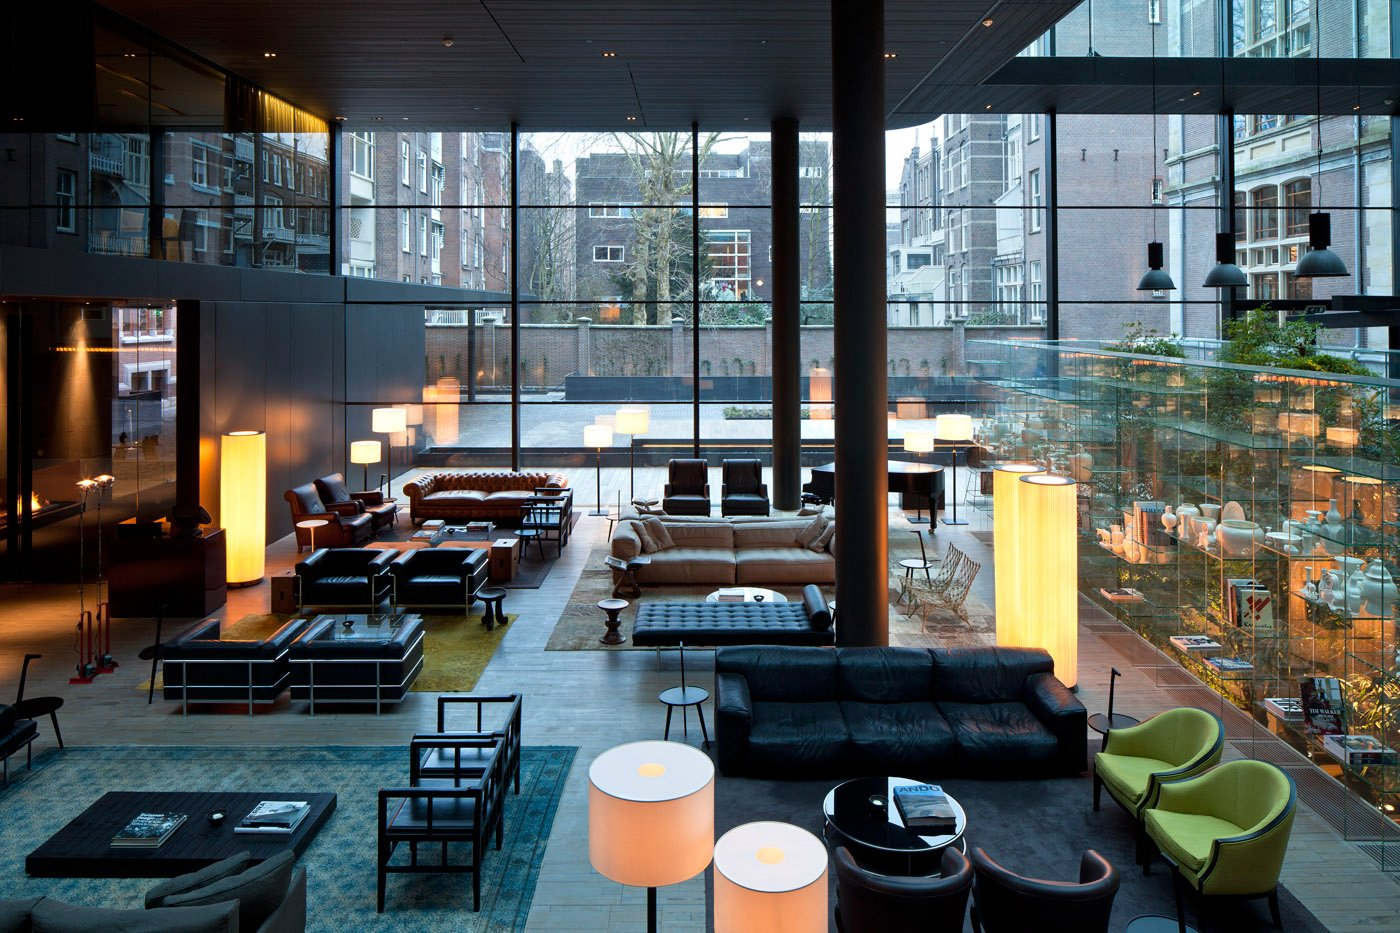 The Conservatorium is outfitted with furniture by Cassina, Kartell, and Living Divani. Places to go by Lara Deam